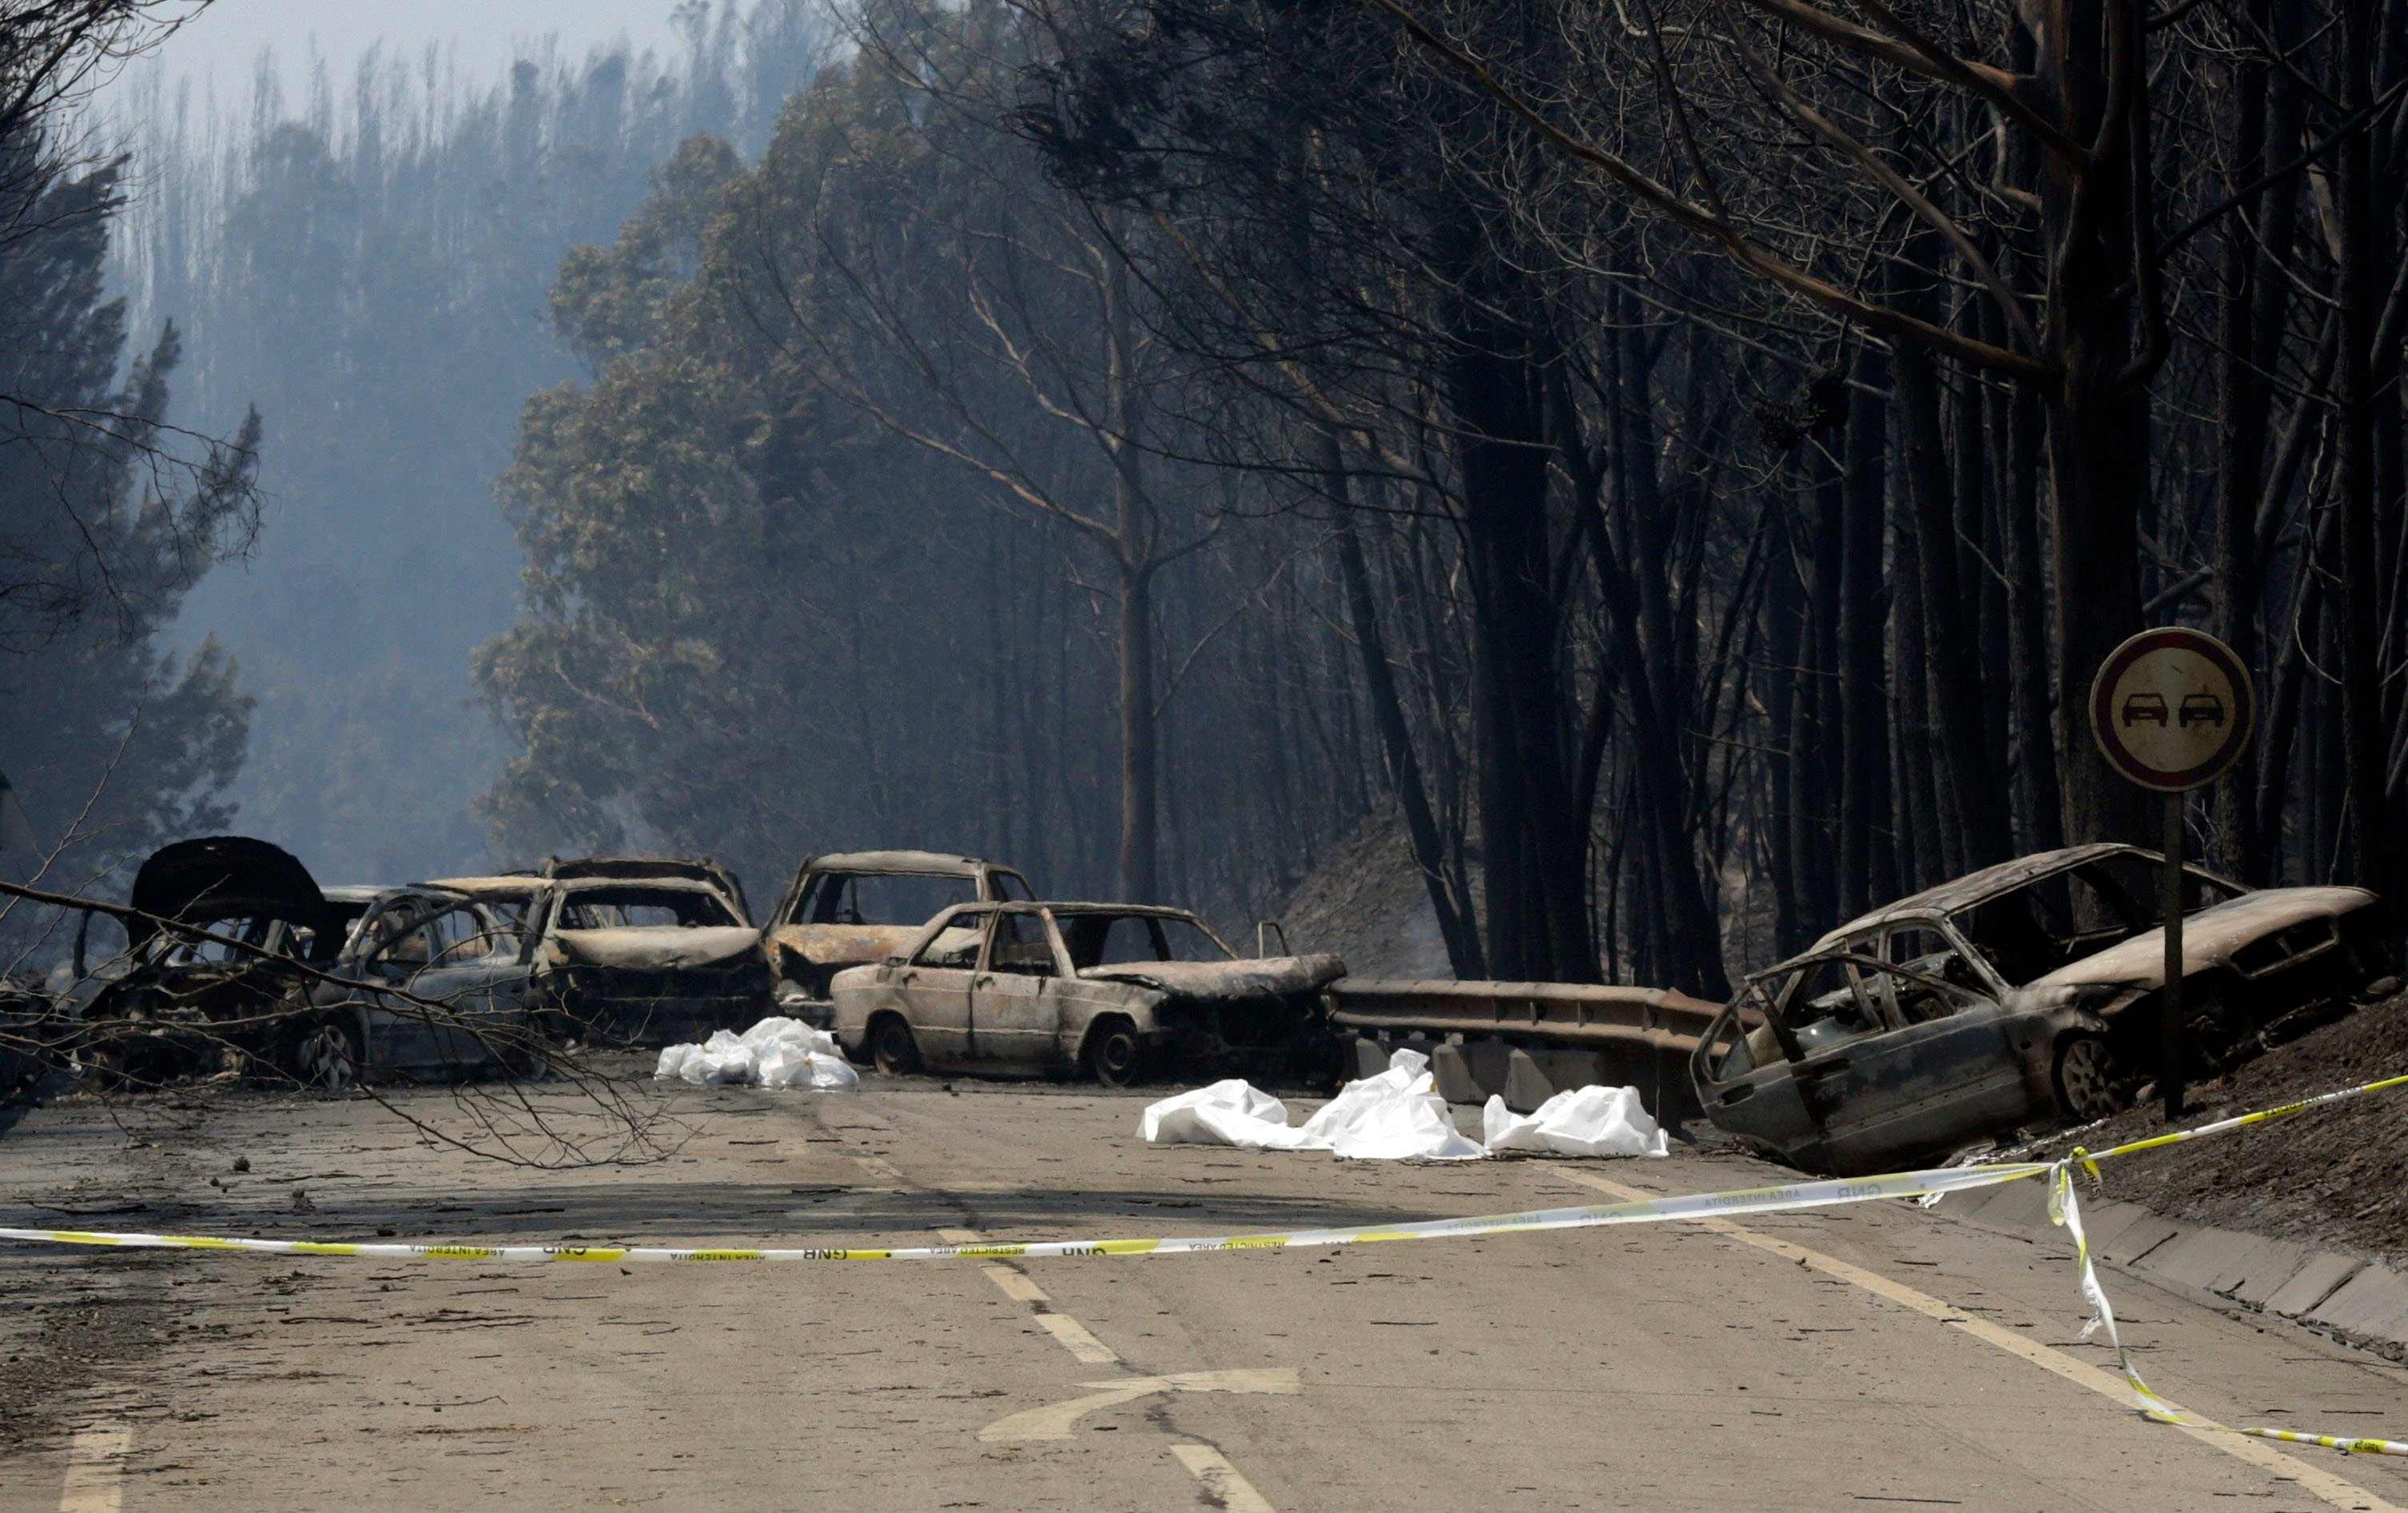 Burnt cars block the road between Castanheira de Pera and Figueiro dos Vinhos, central Portugal, Sunday.  (AP Photo/Armando Franca)